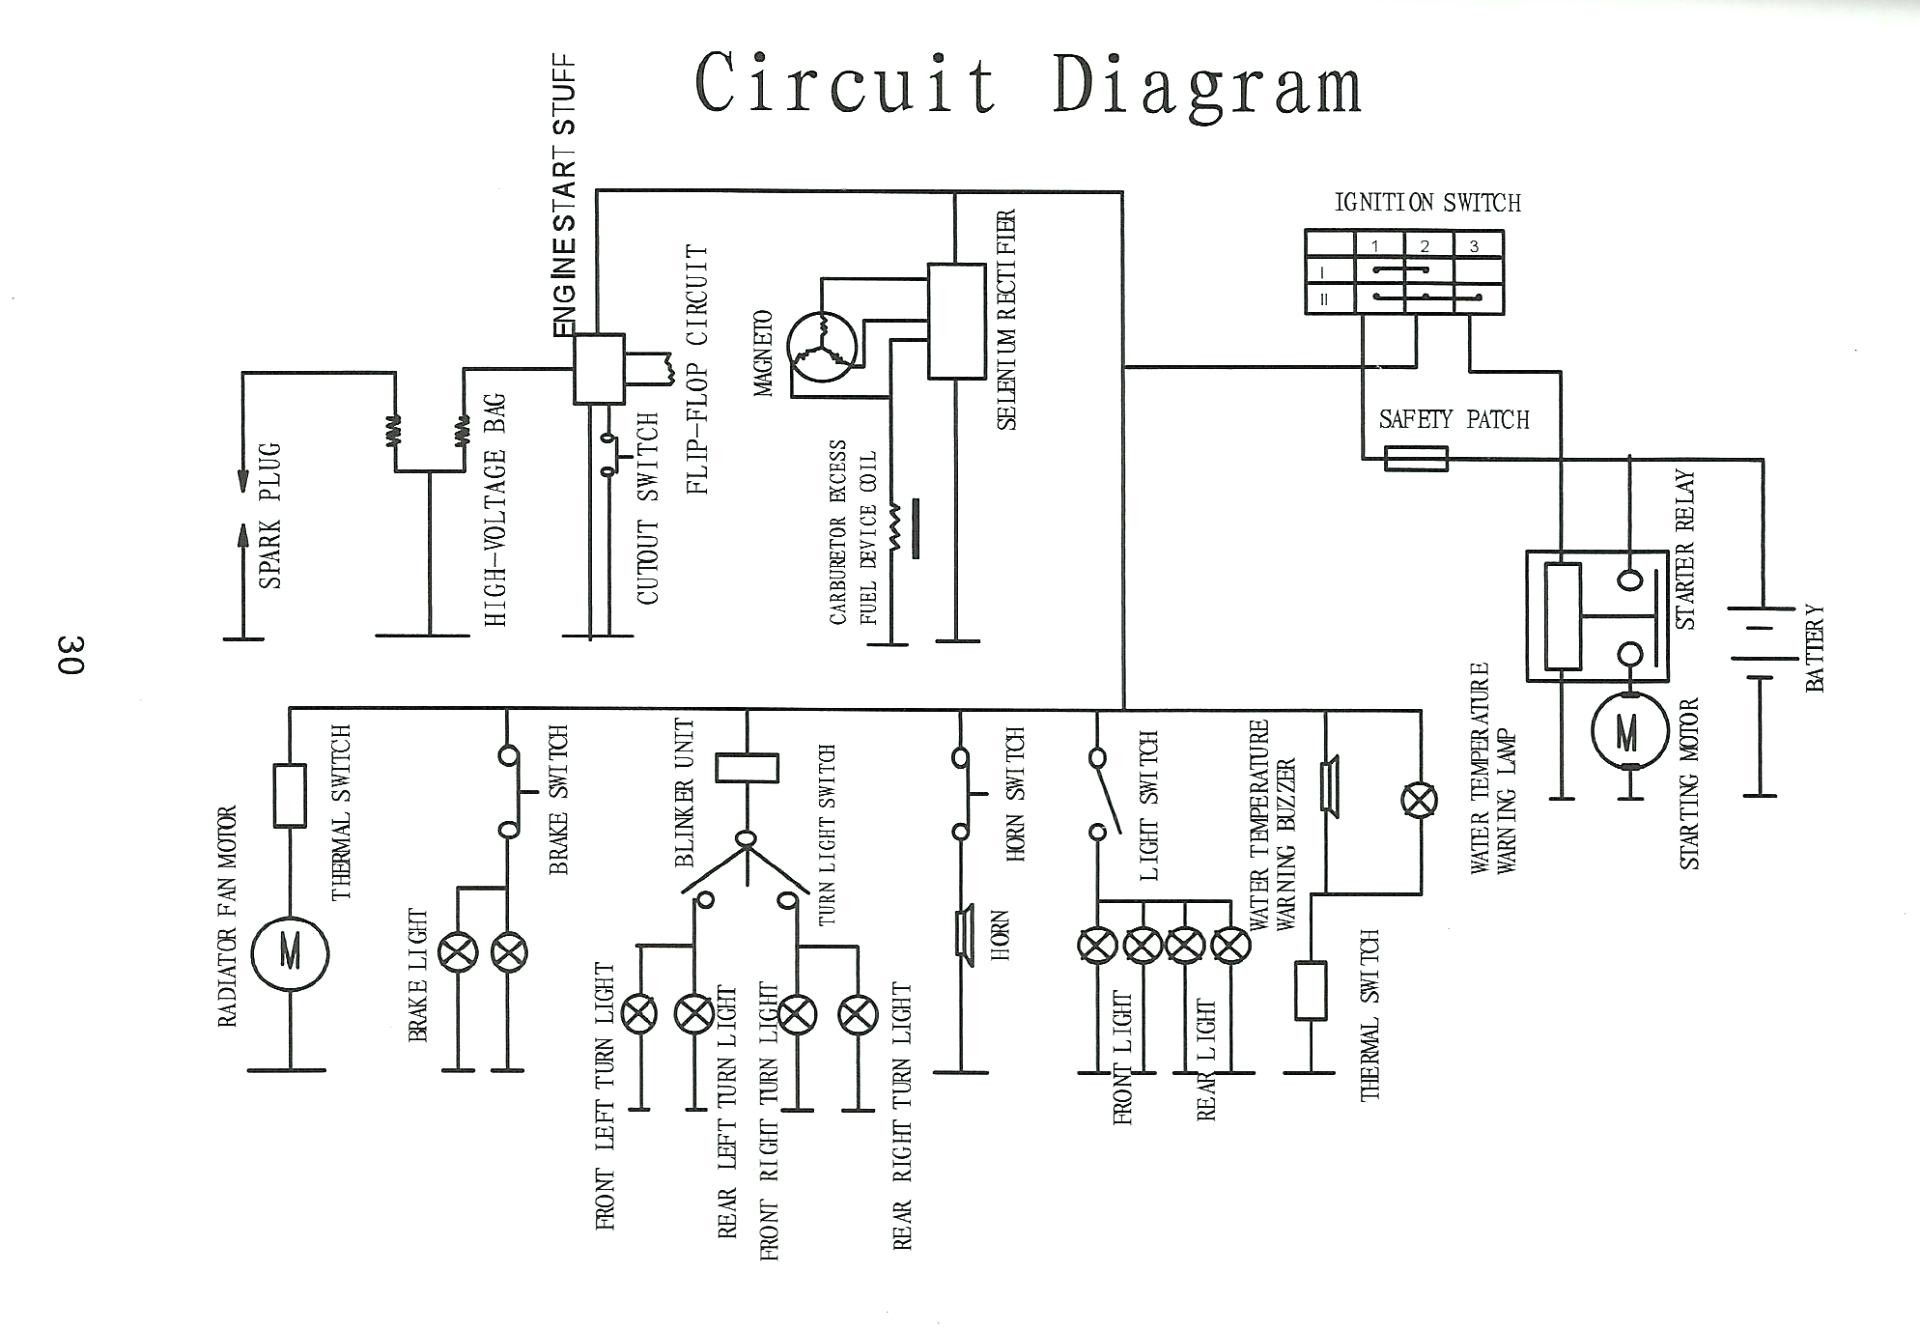 150Cc Scooter Wiring Diagram | Wiring Diagram